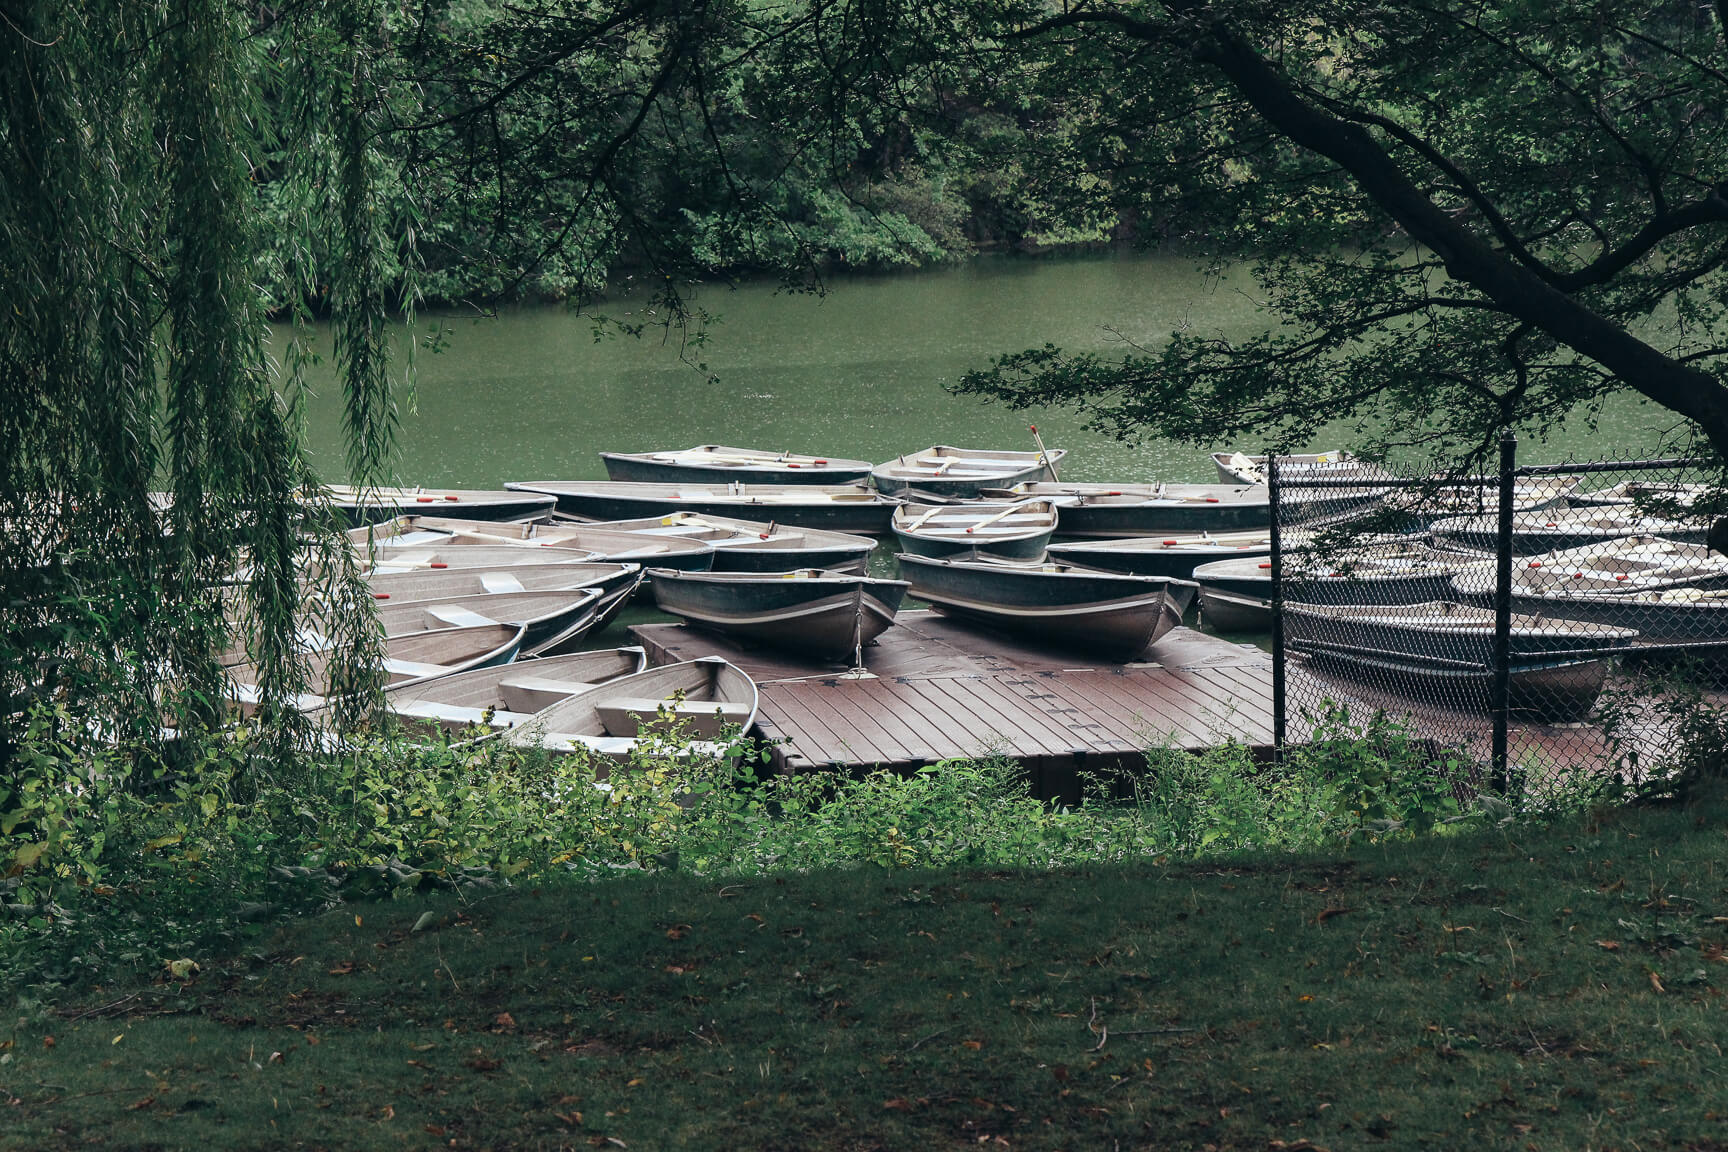 The Lake Central Park rowboats